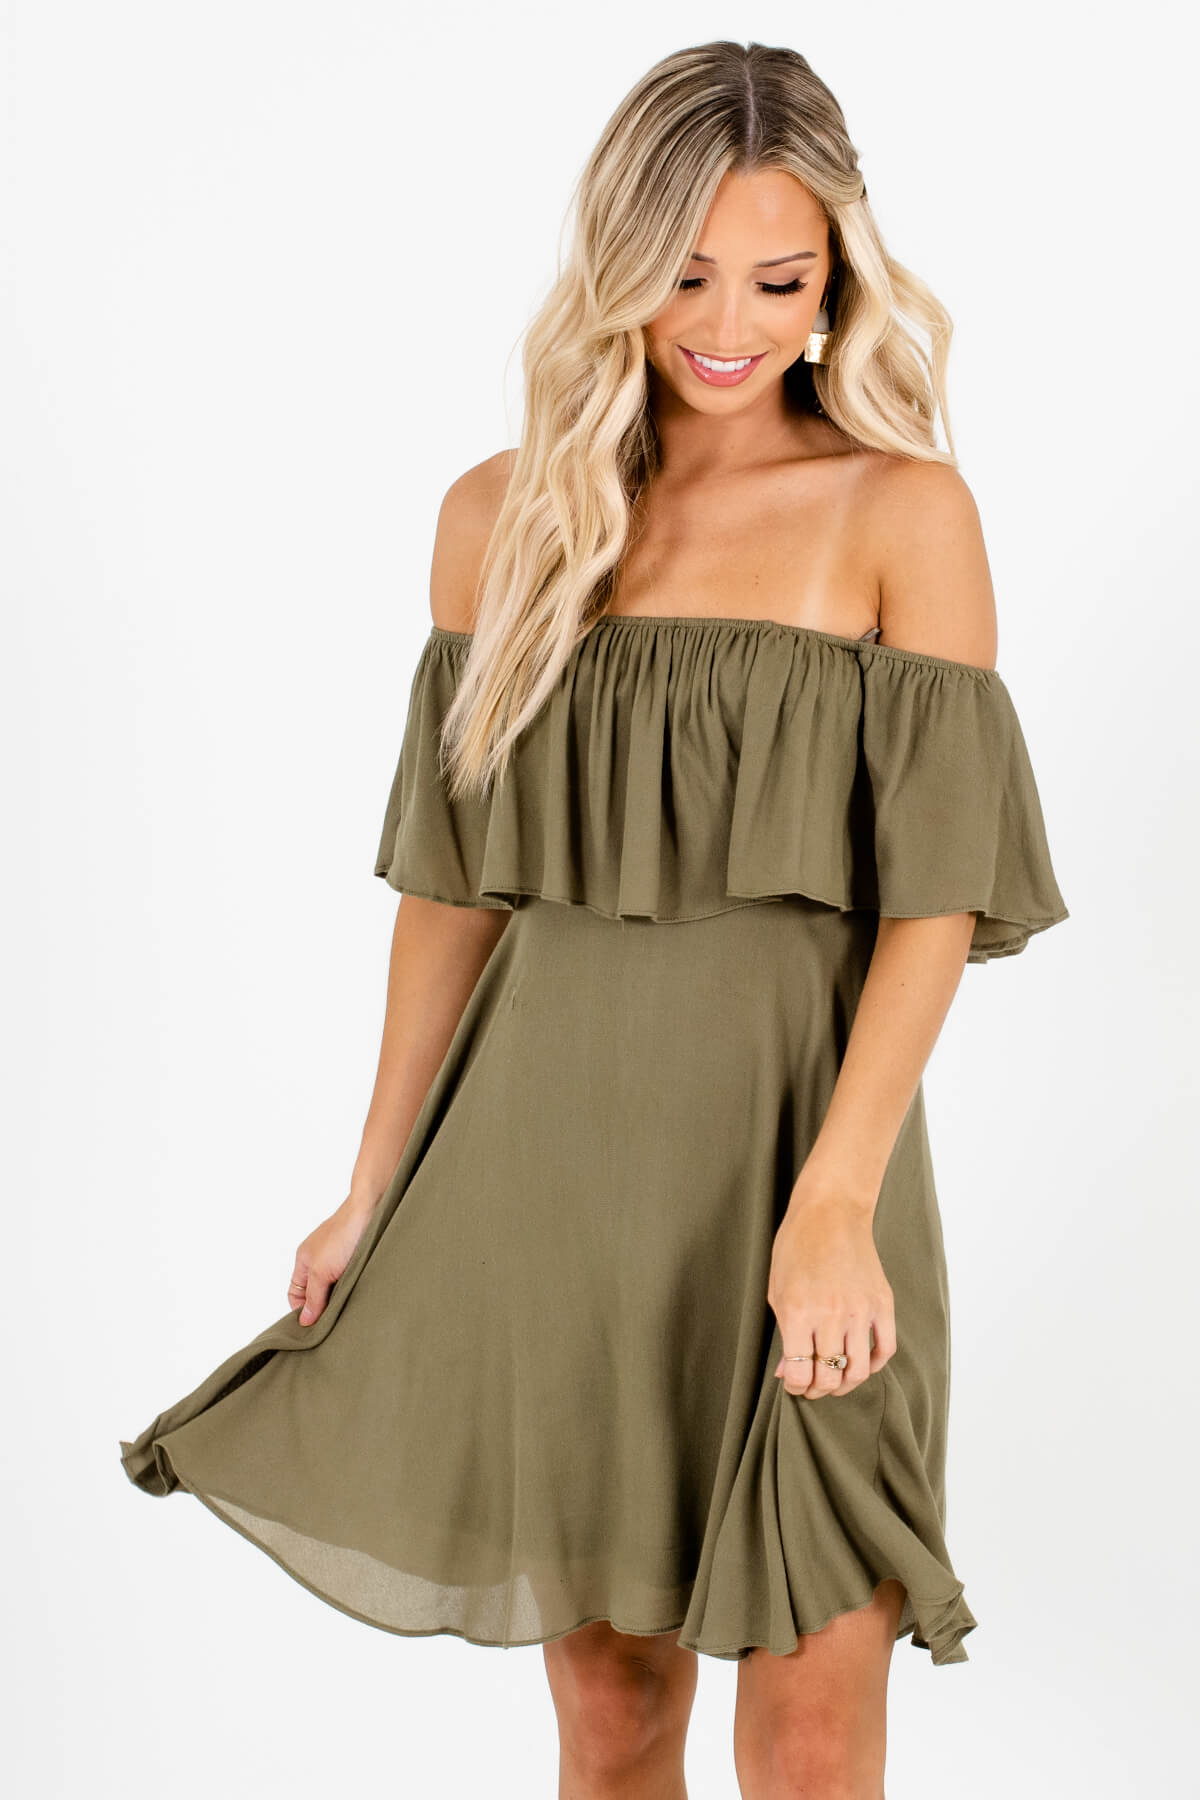 Olive Green Off Shoulder Style Boutique Mini Dresses for Women